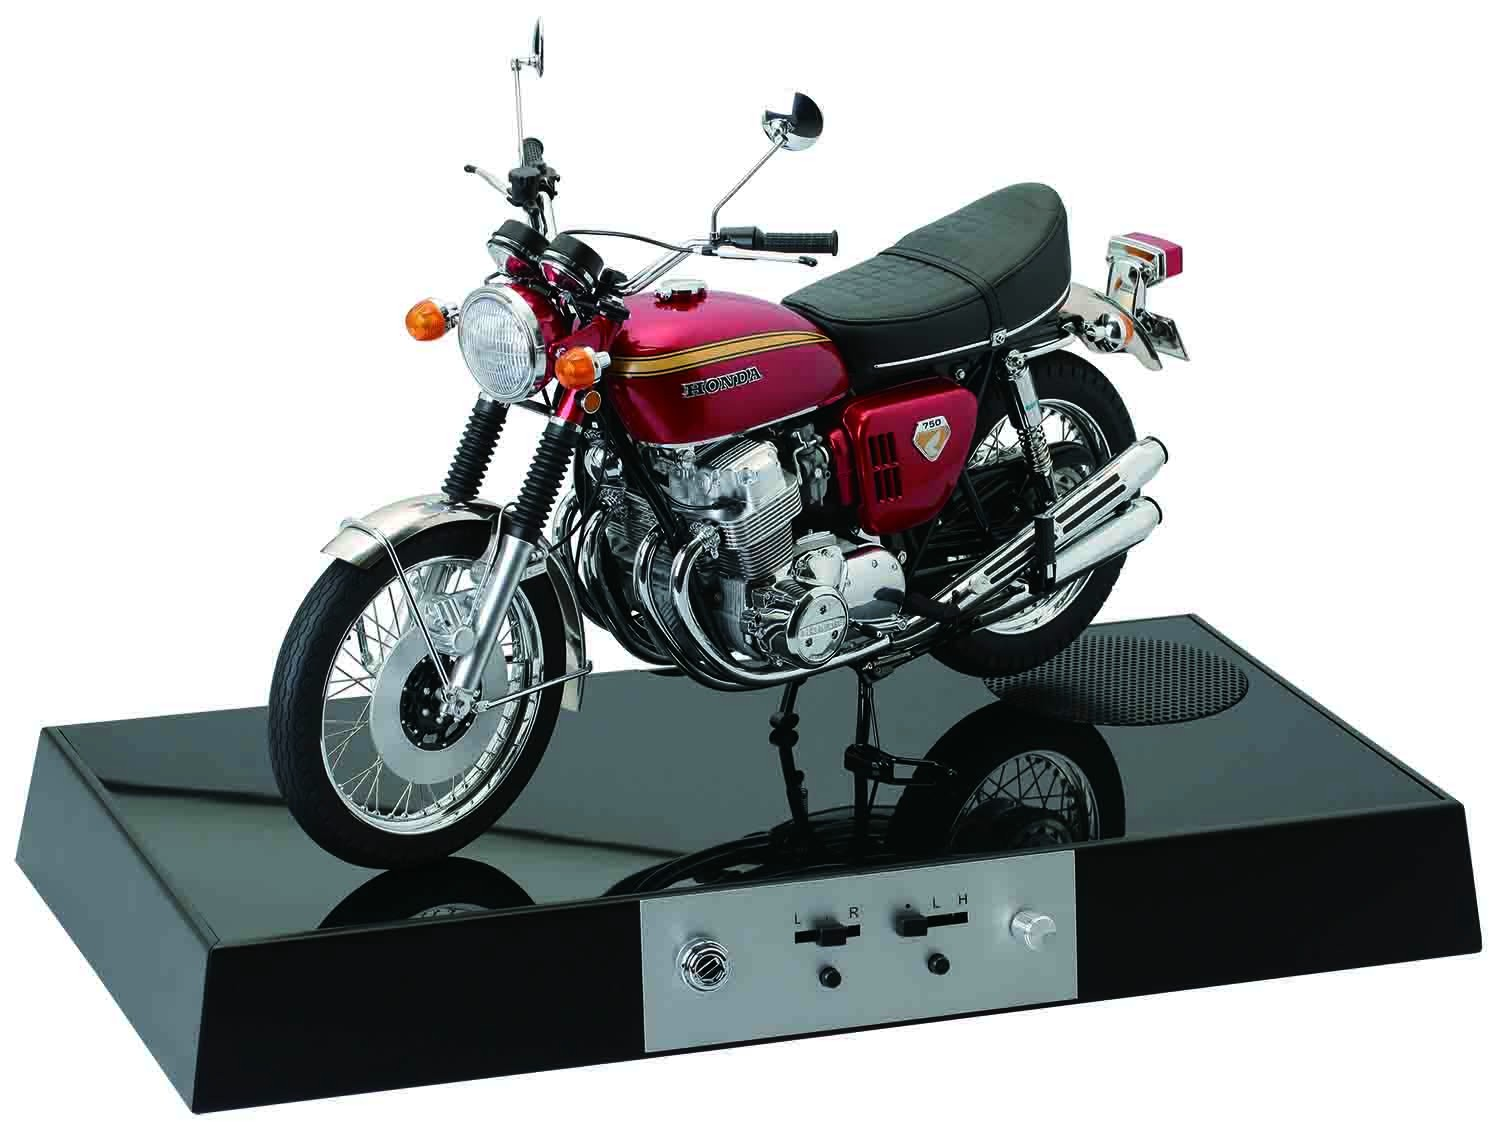 videos of rc planes with Build The Honda Cb750 on Attachment in addition 80098 Gta V Re Sized V55 Stable likewise Attachment further 53 furthermore Build The Senna Mclaren.